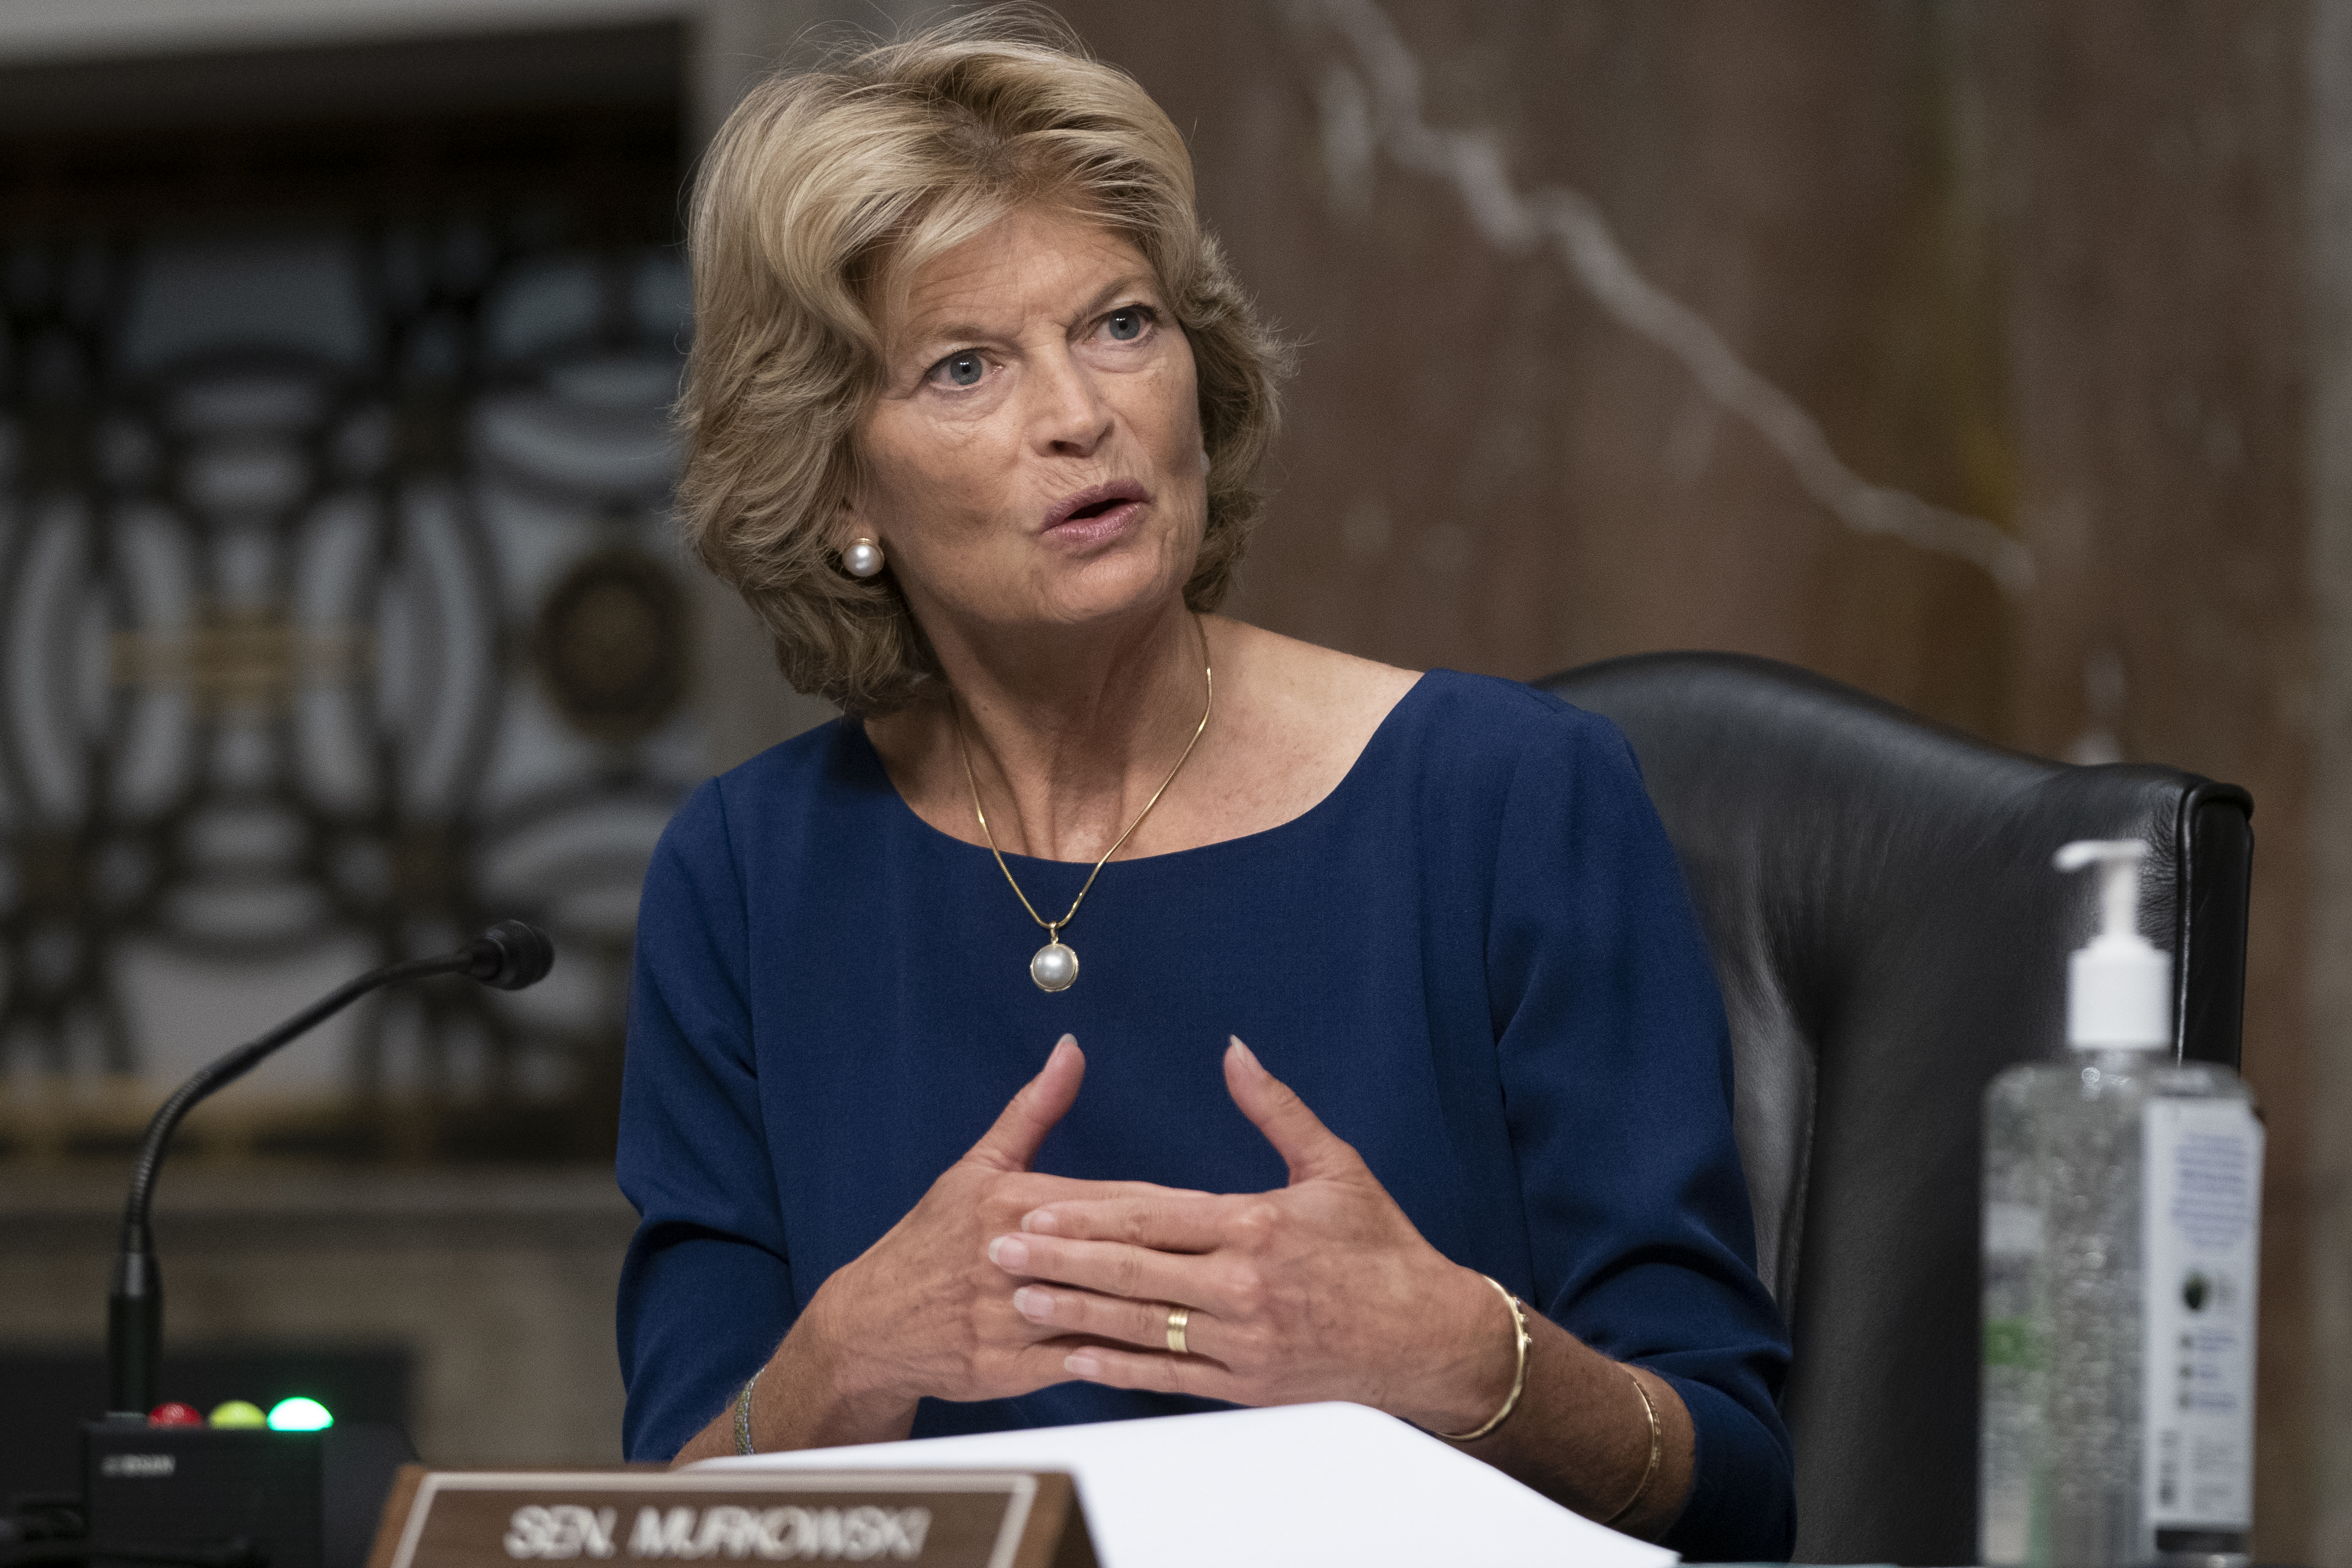 Murkowski, seated in a blue dress, speaks into a microphone without a mask. A large bottle of hand sanitizer is to her left.